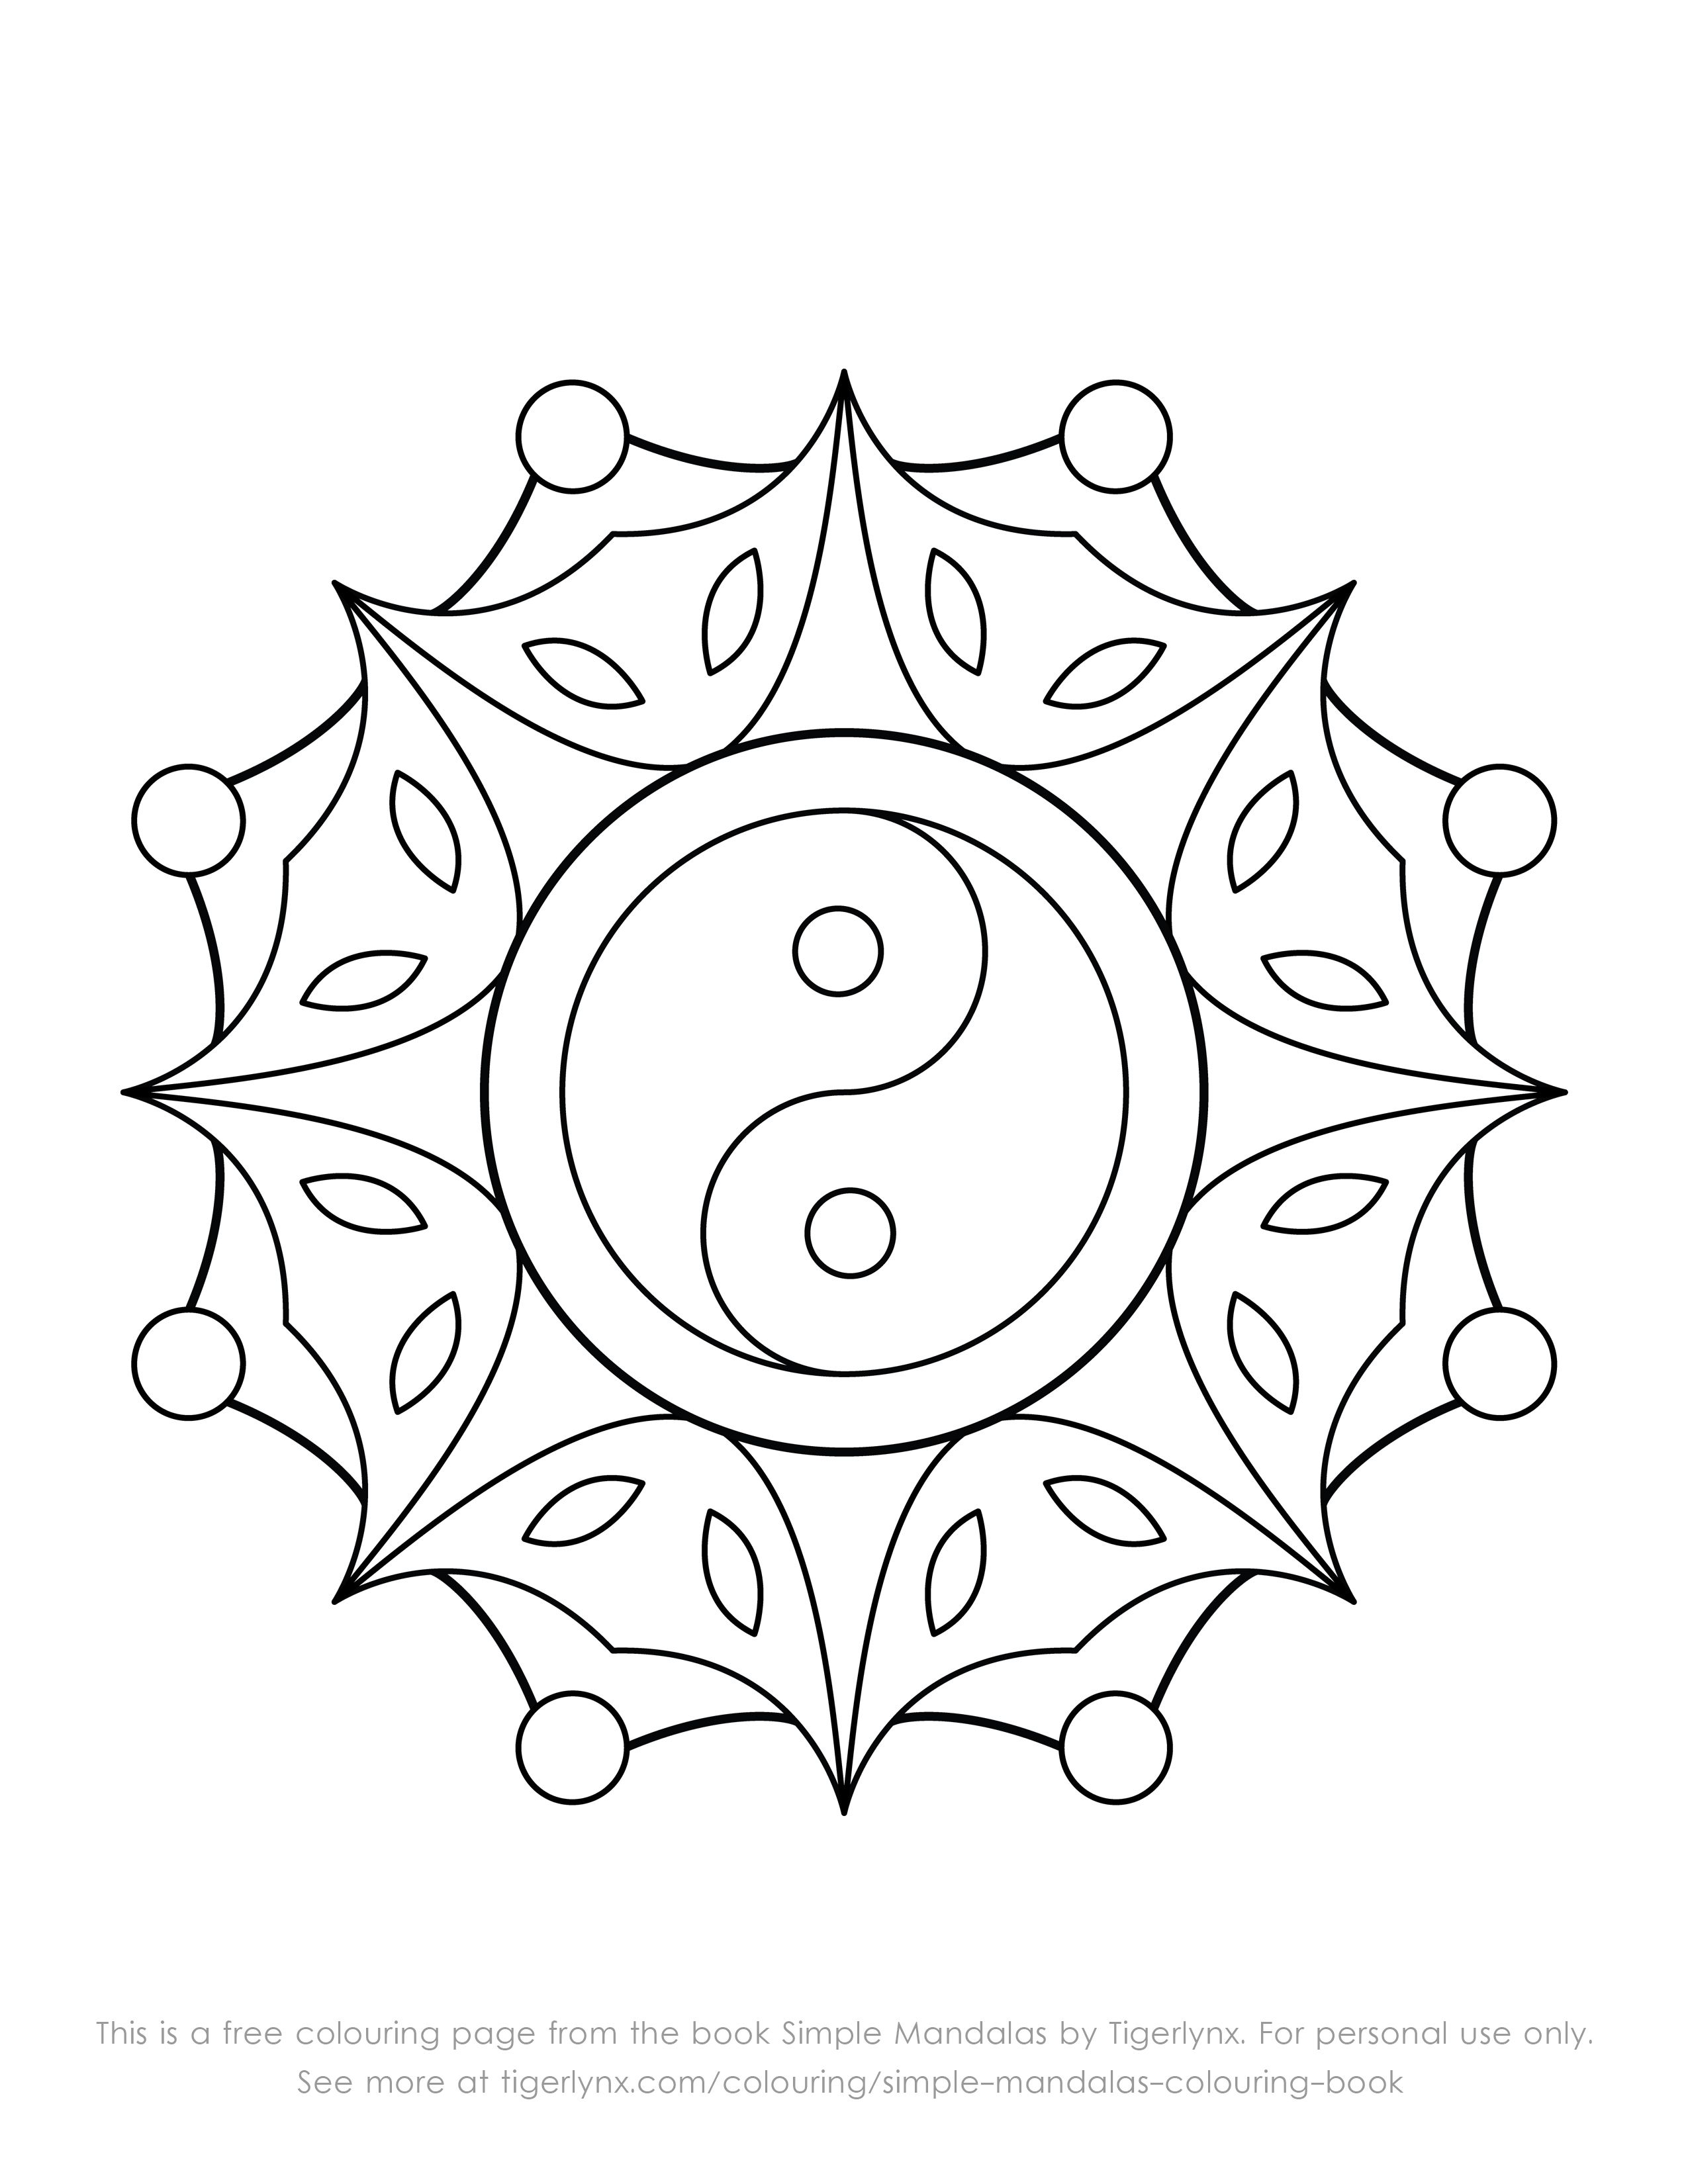 2550x3300 This Is A Free Colouring Page With An Easy Yin Yang Mandala Design